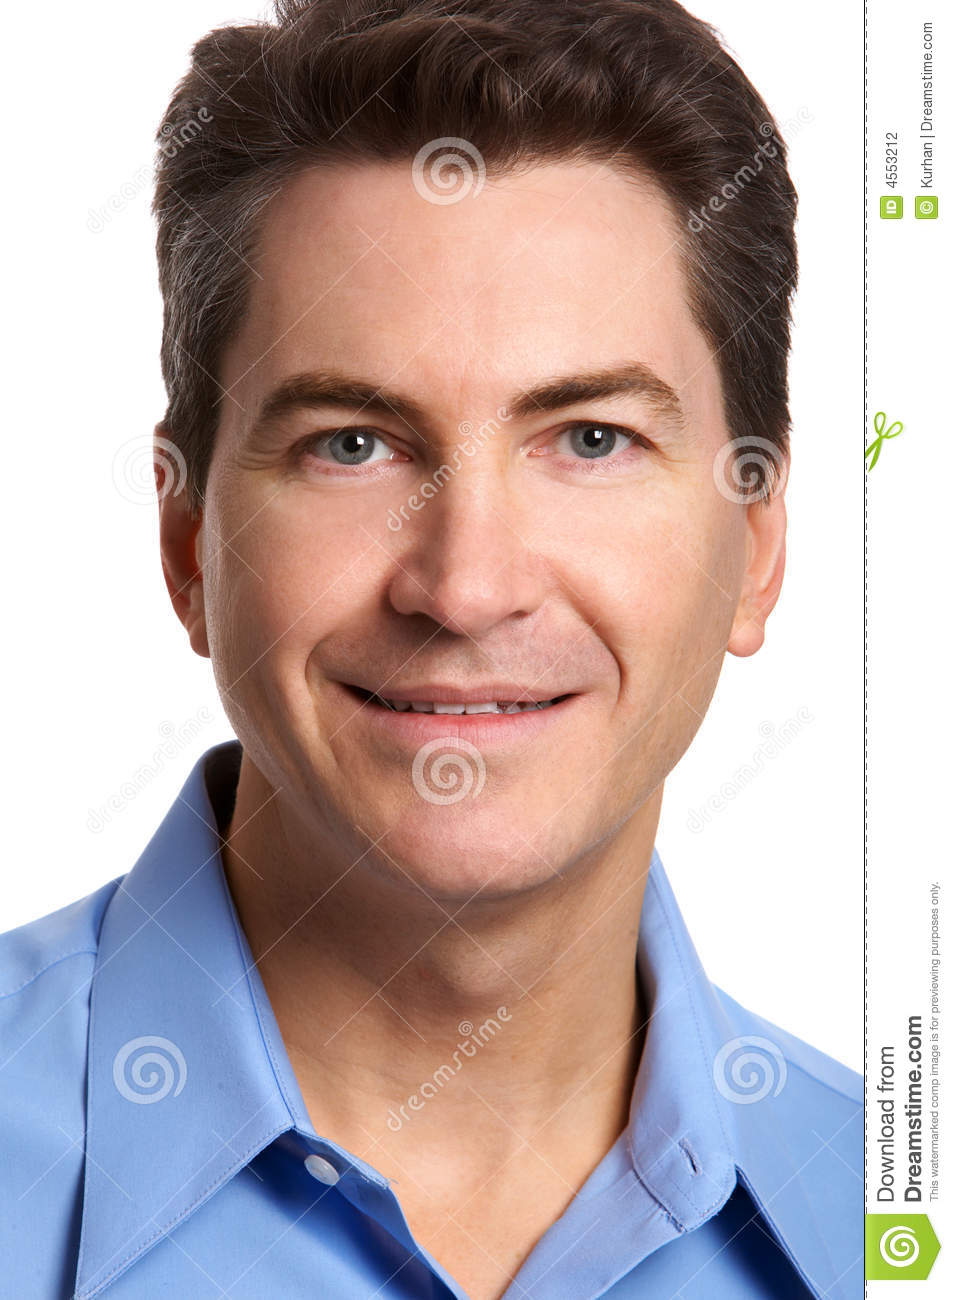 Businessman Smiling 40s On Isolated Background Stock ...